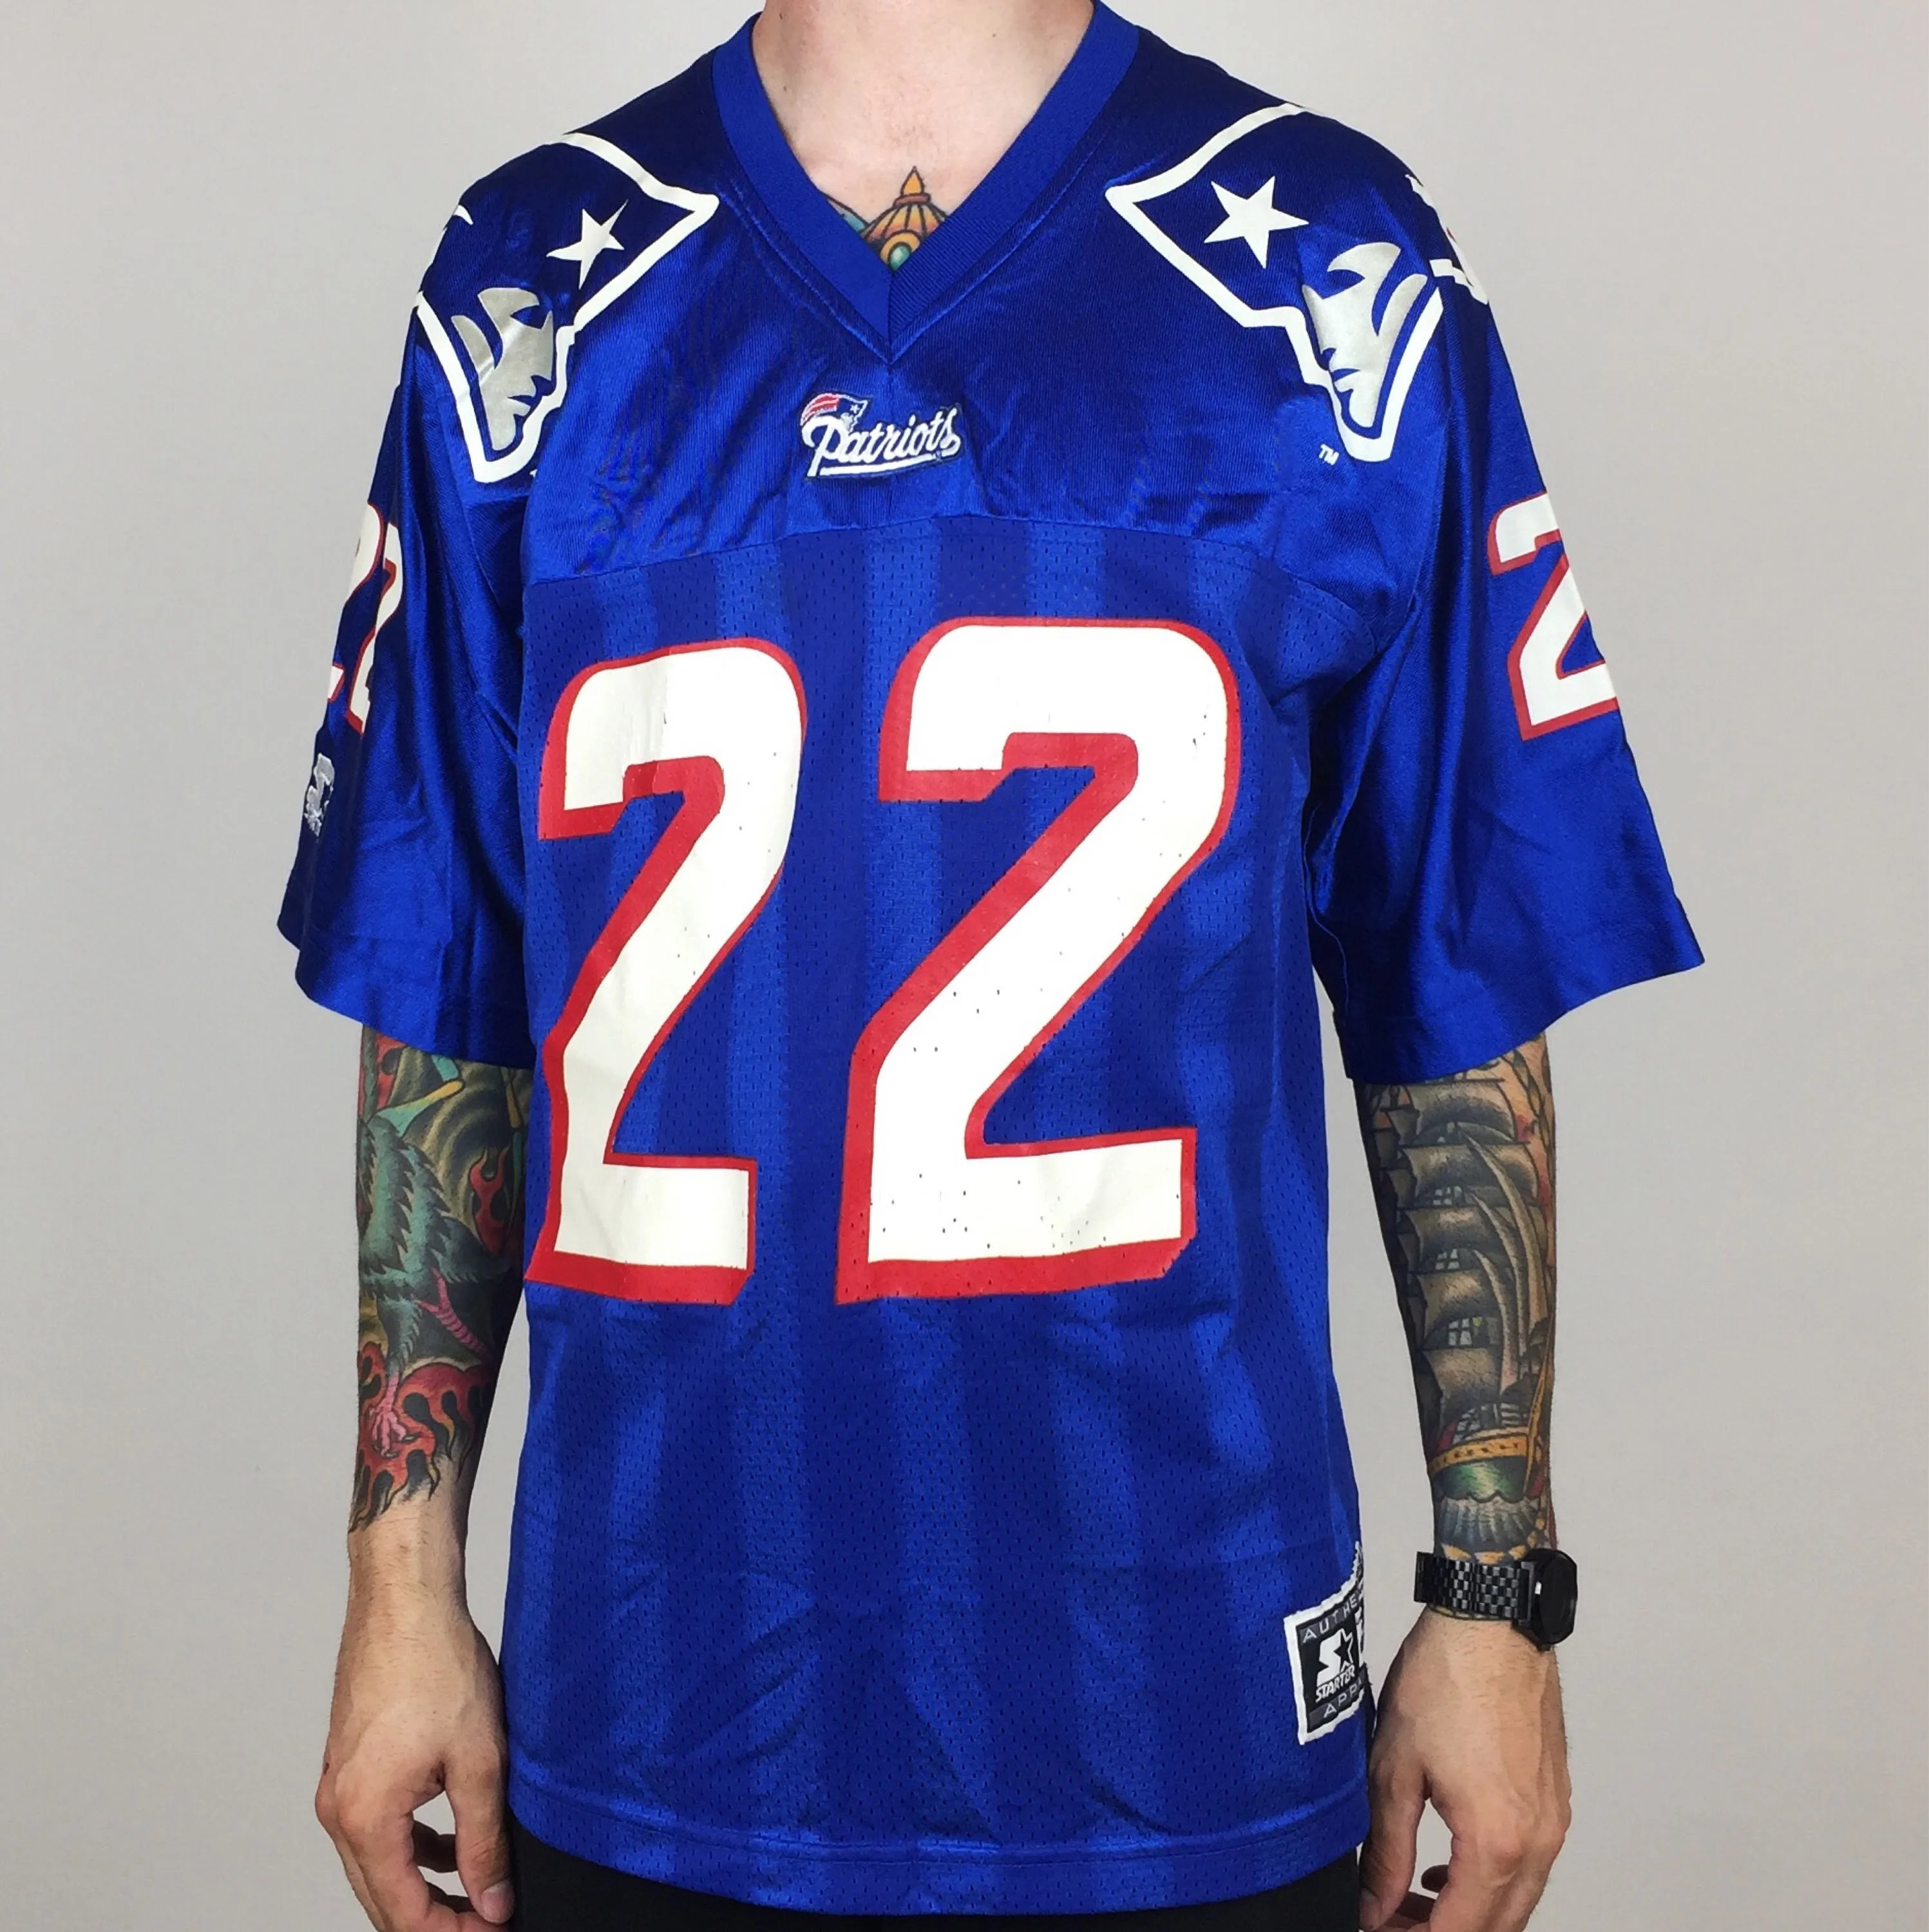 Retro Jerseys Reduced New England Patriots Retro Jerseys 98539 39143